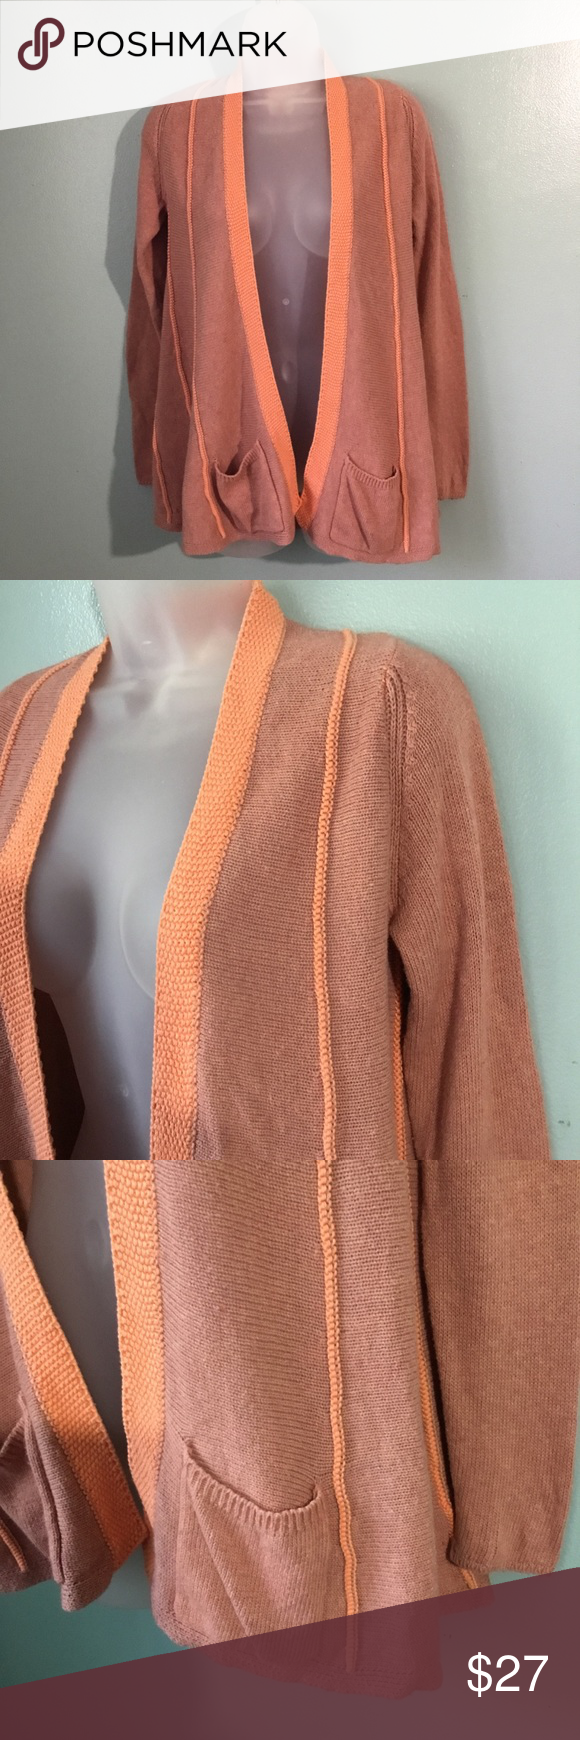 f1bc9dd0e8d Anthropologie Angel of the North cardigan Dusty rose with light peach trim